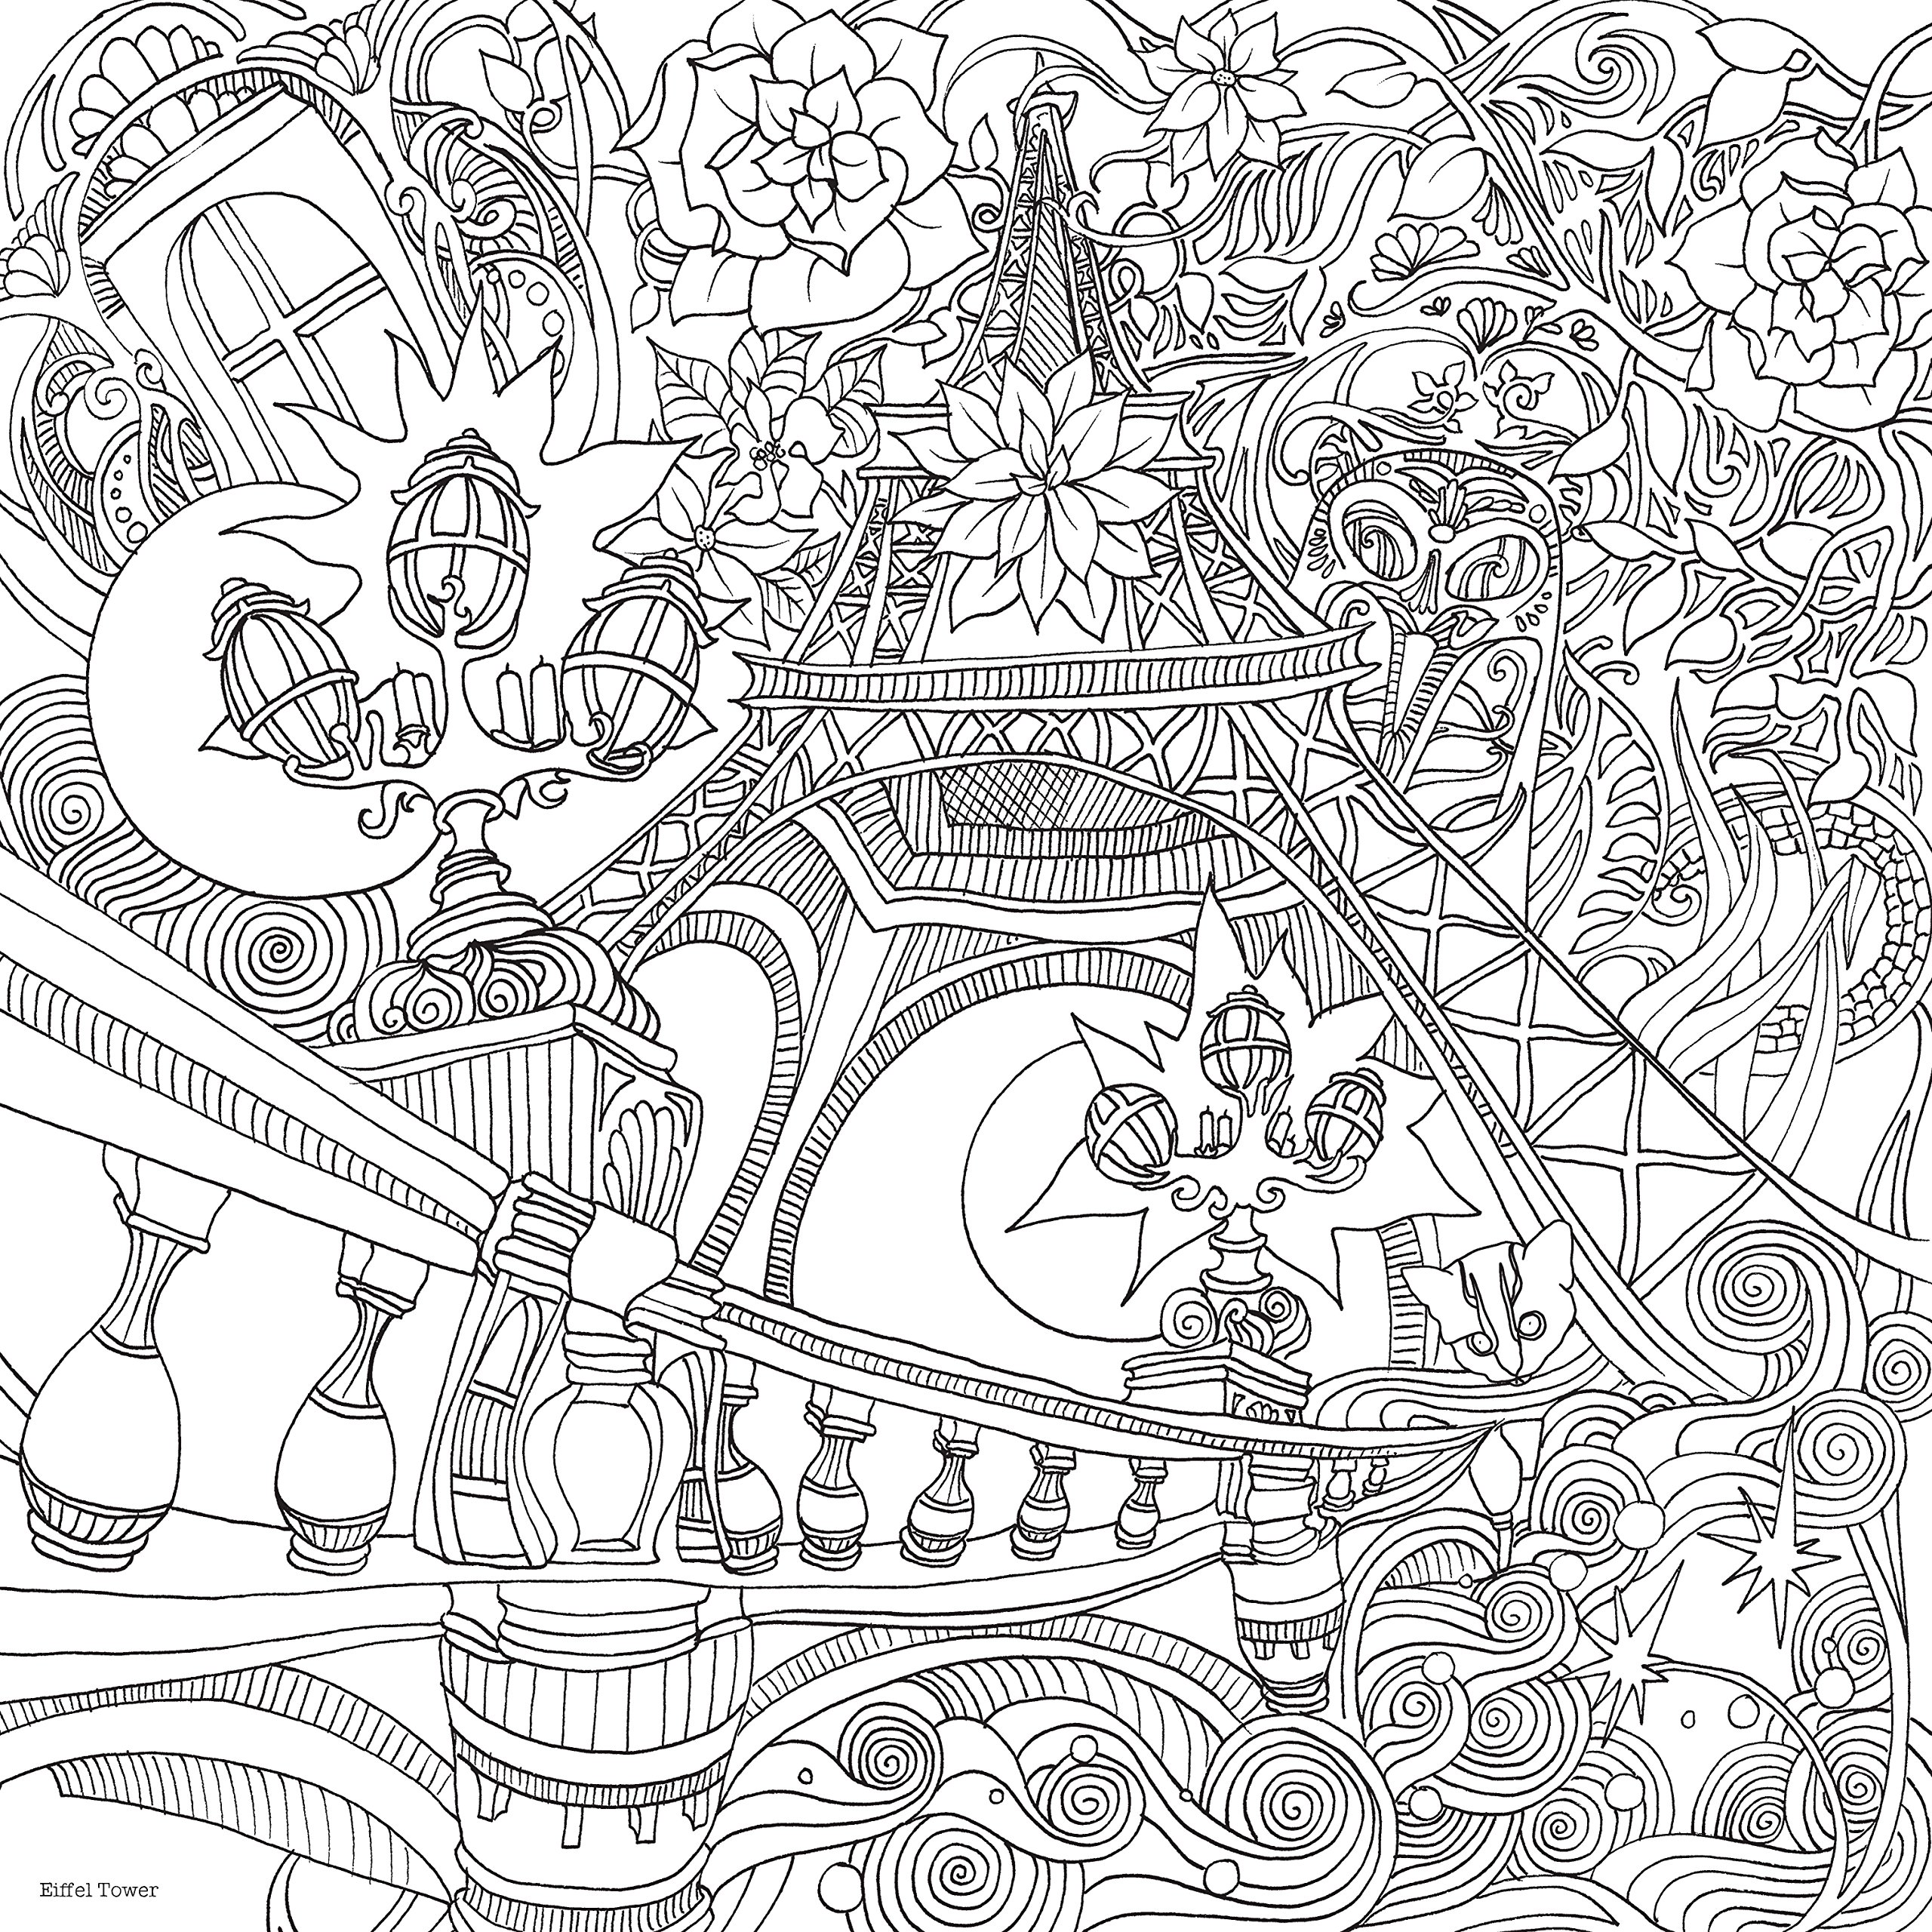 Amazoncom The Magical City A Colouring Book Magical Colouring